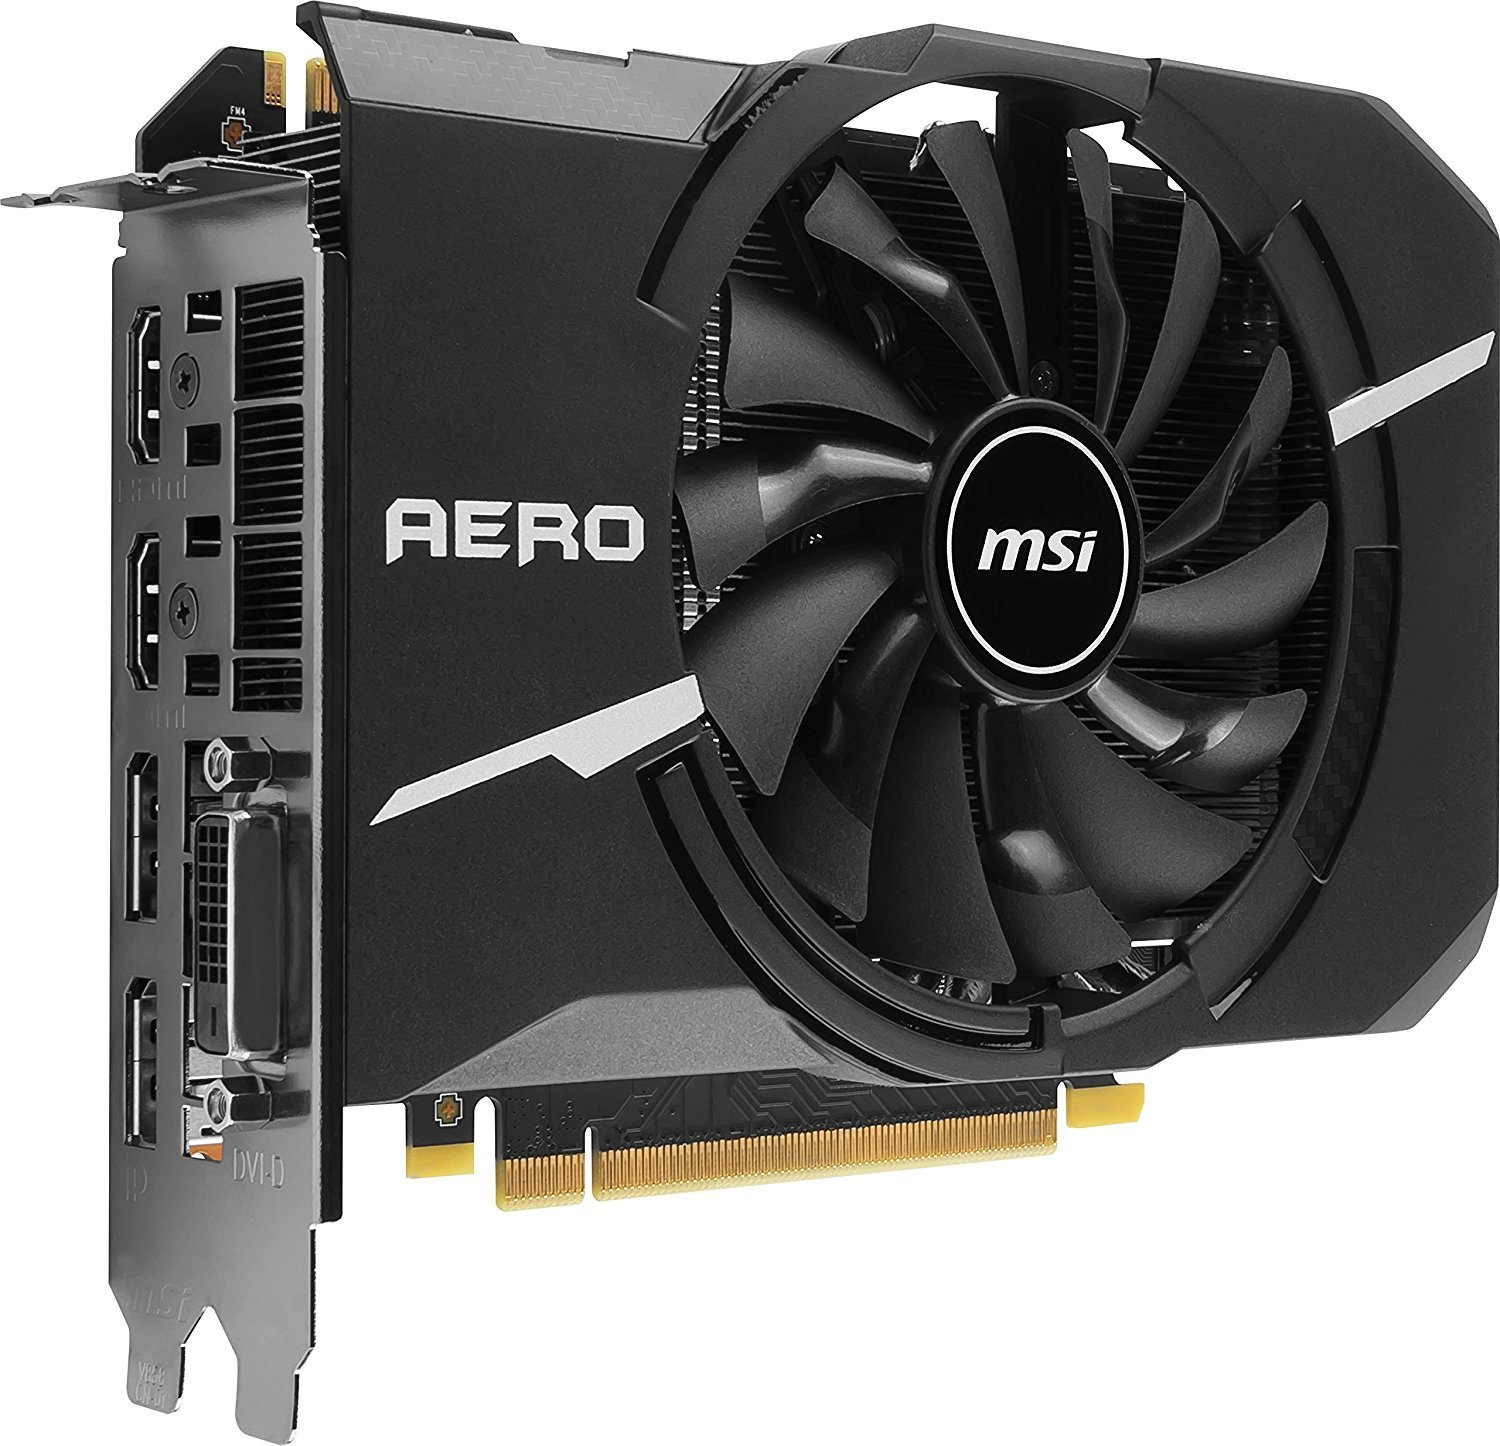 MSI GeForce GTX 1070 Aero 8GB OC Graphics Card image